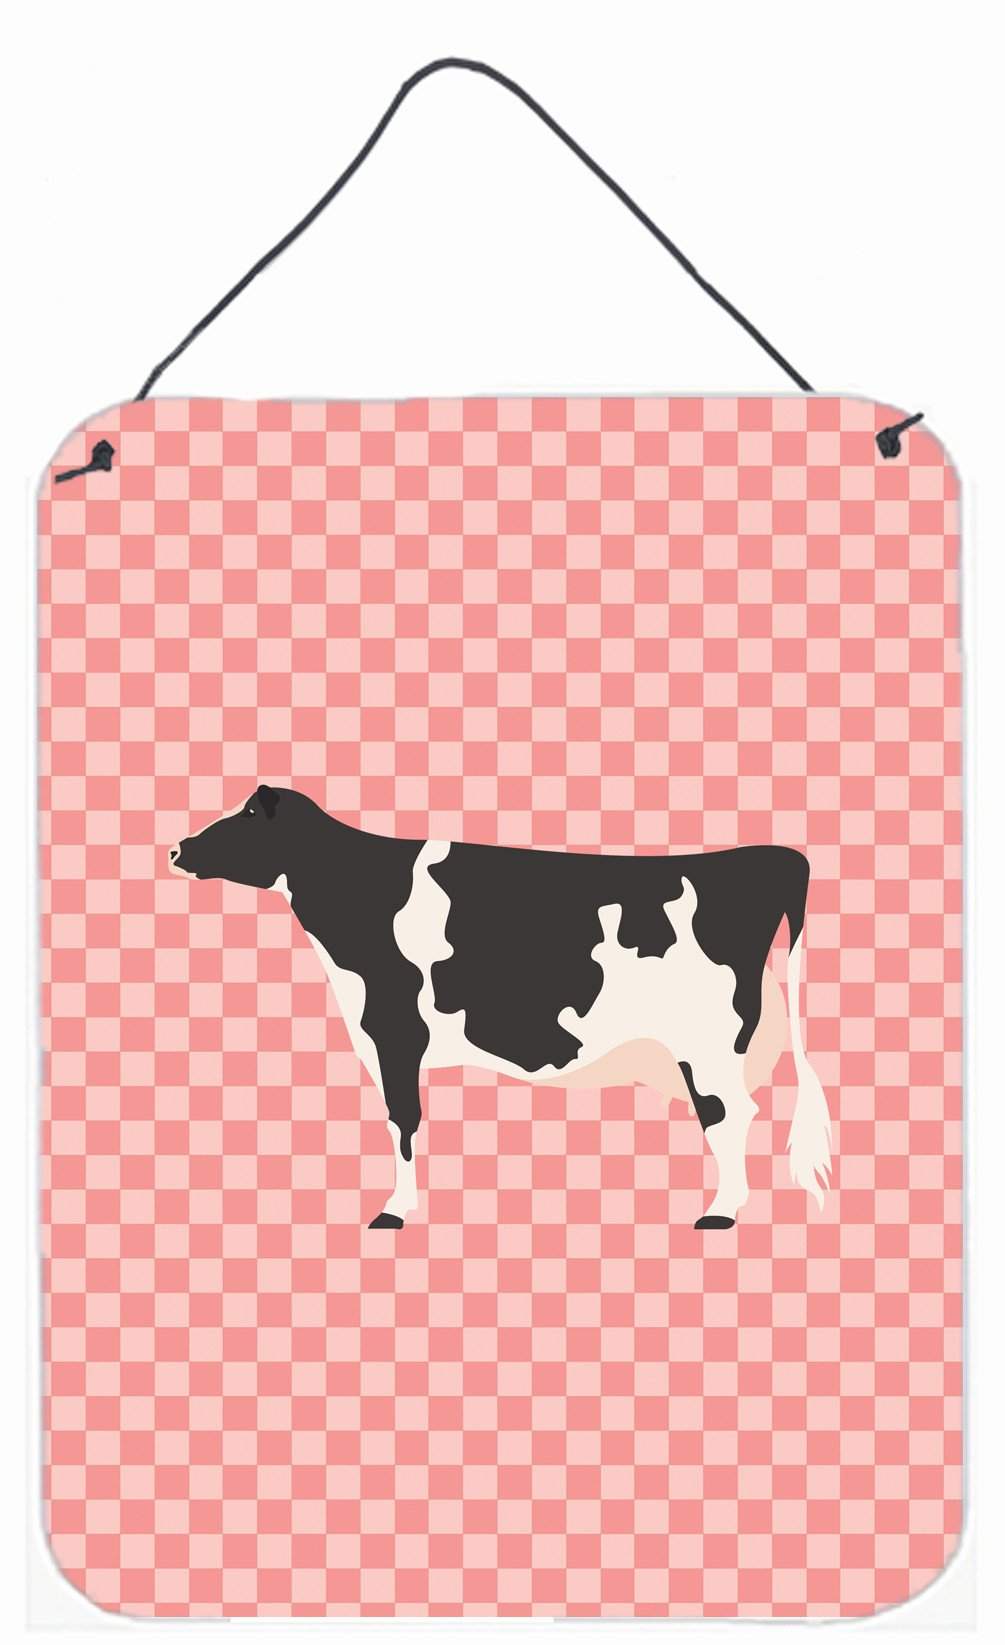 Holstein Cow Pink Check Wall or Door Hanging Prints BB7822DS1216 by Caroline's Treasures